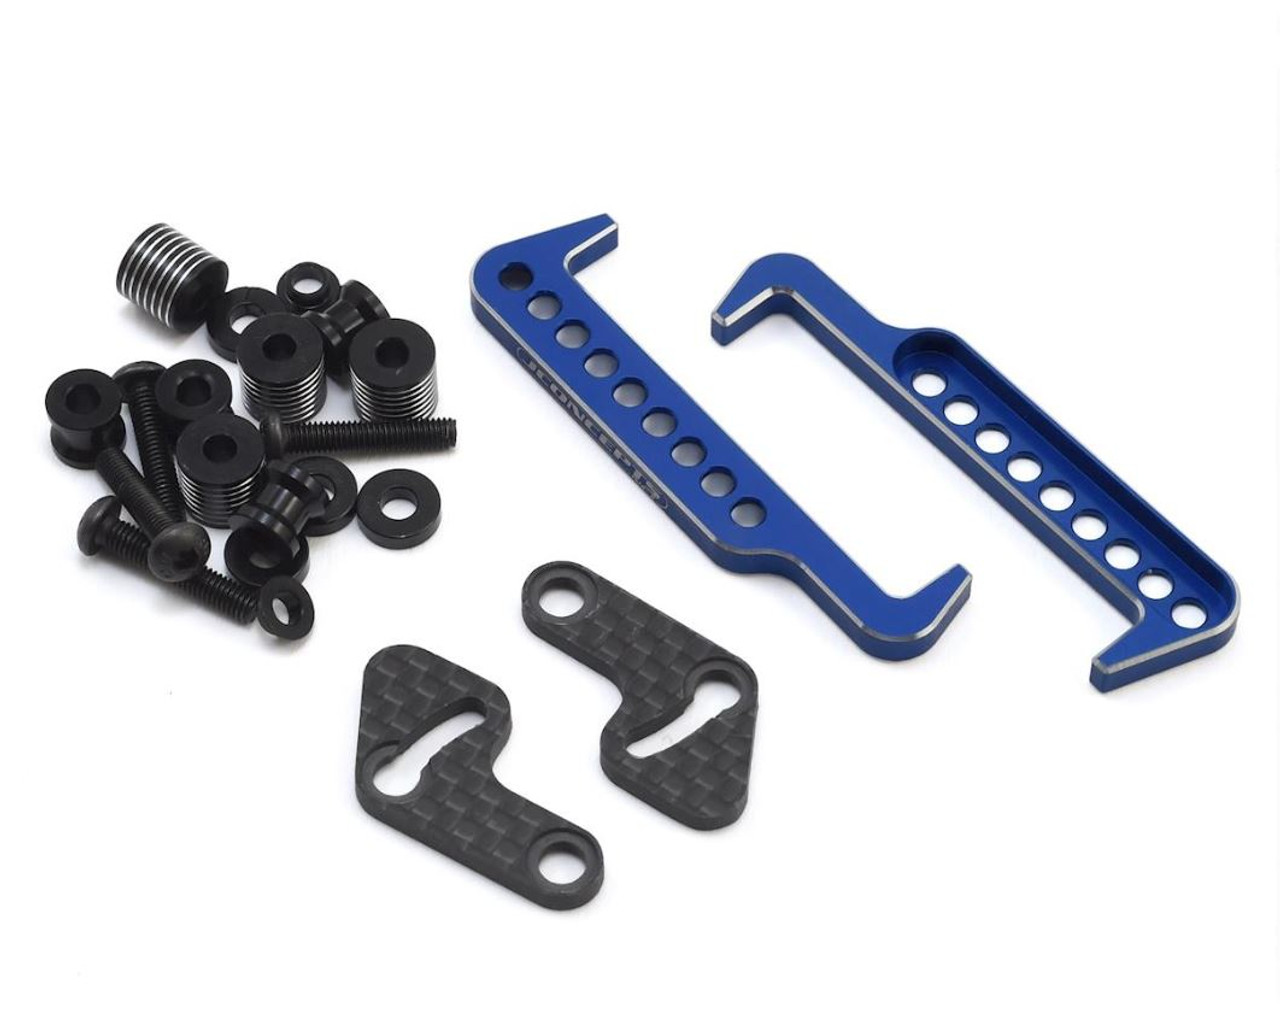 JConcepts 2604-1 Swing Operated Battery Retainer Set (B6.1/SC6.1/T6.1) (Blue)